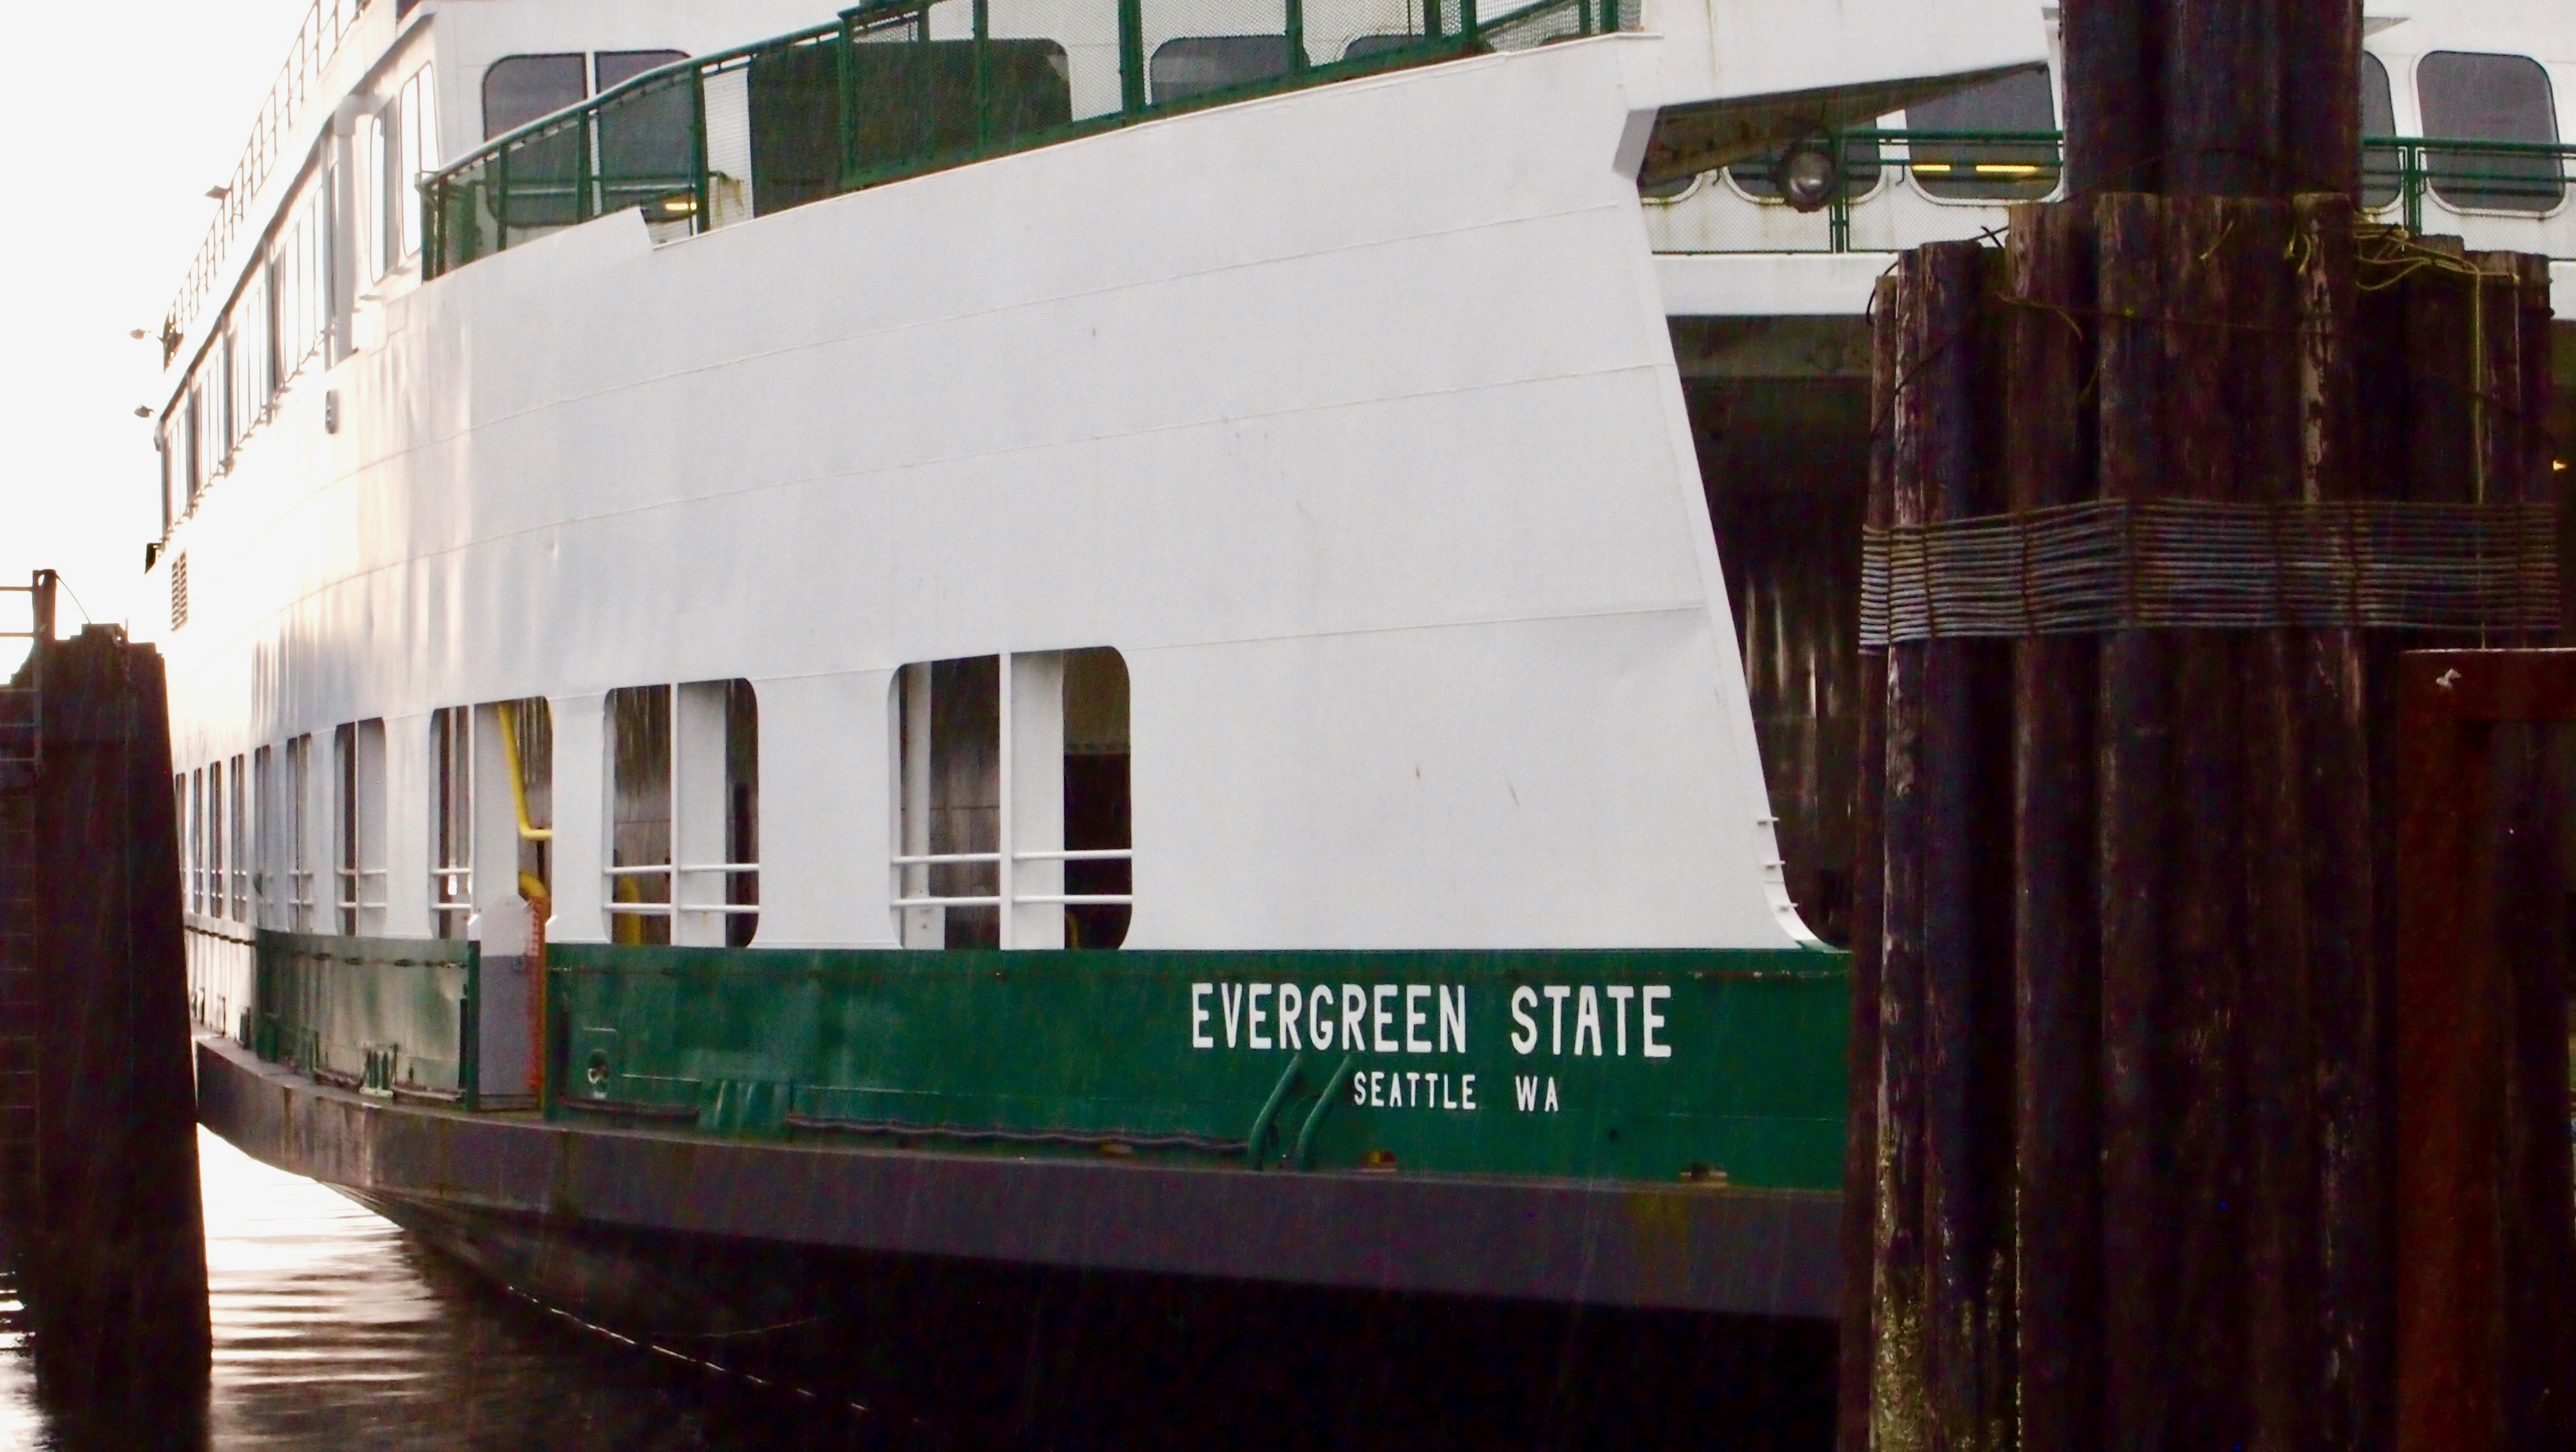 """Text on the hull of a ferry reads """"EVERGREEN STATE"""""""